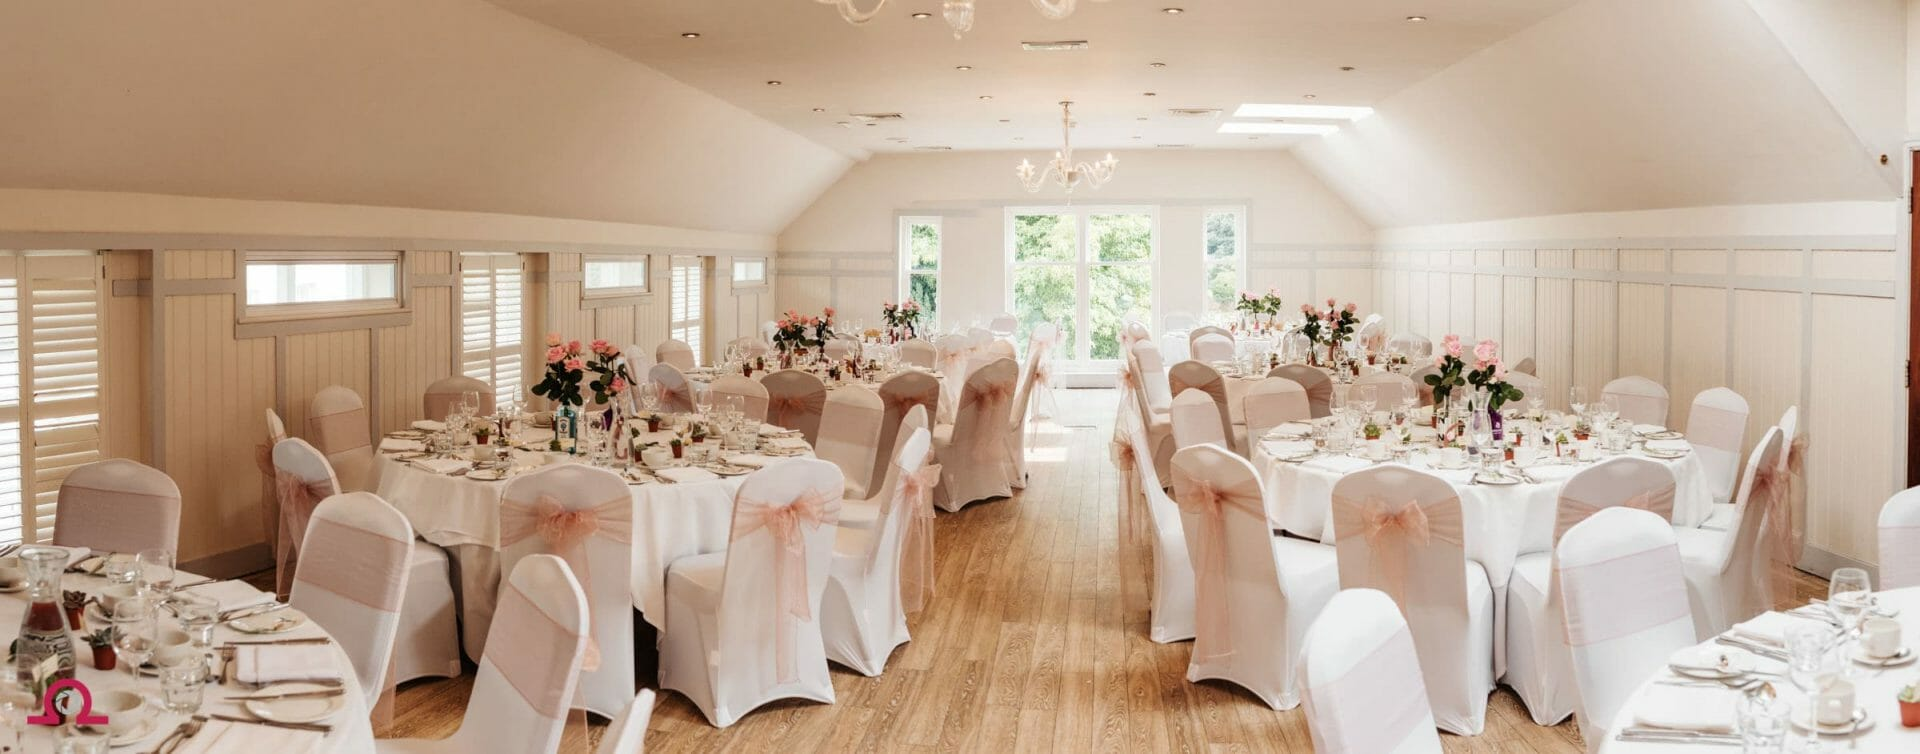 Kings-Arms-priory- wedding breakfast